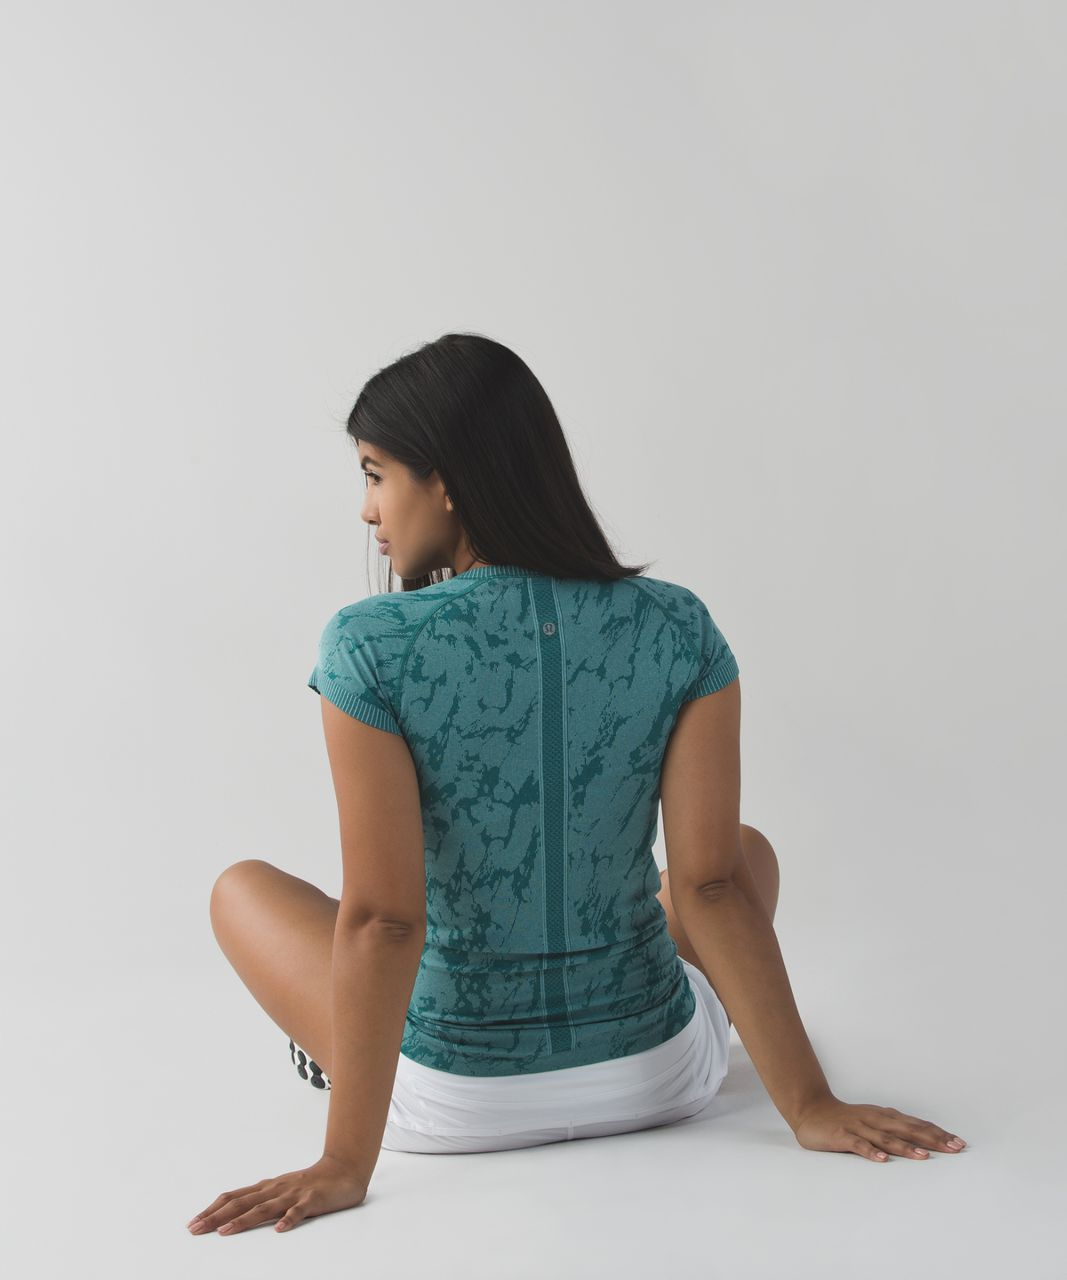 Lululemon Swiftly Tech Short Sleeve Crew - Heathered Forage Teal